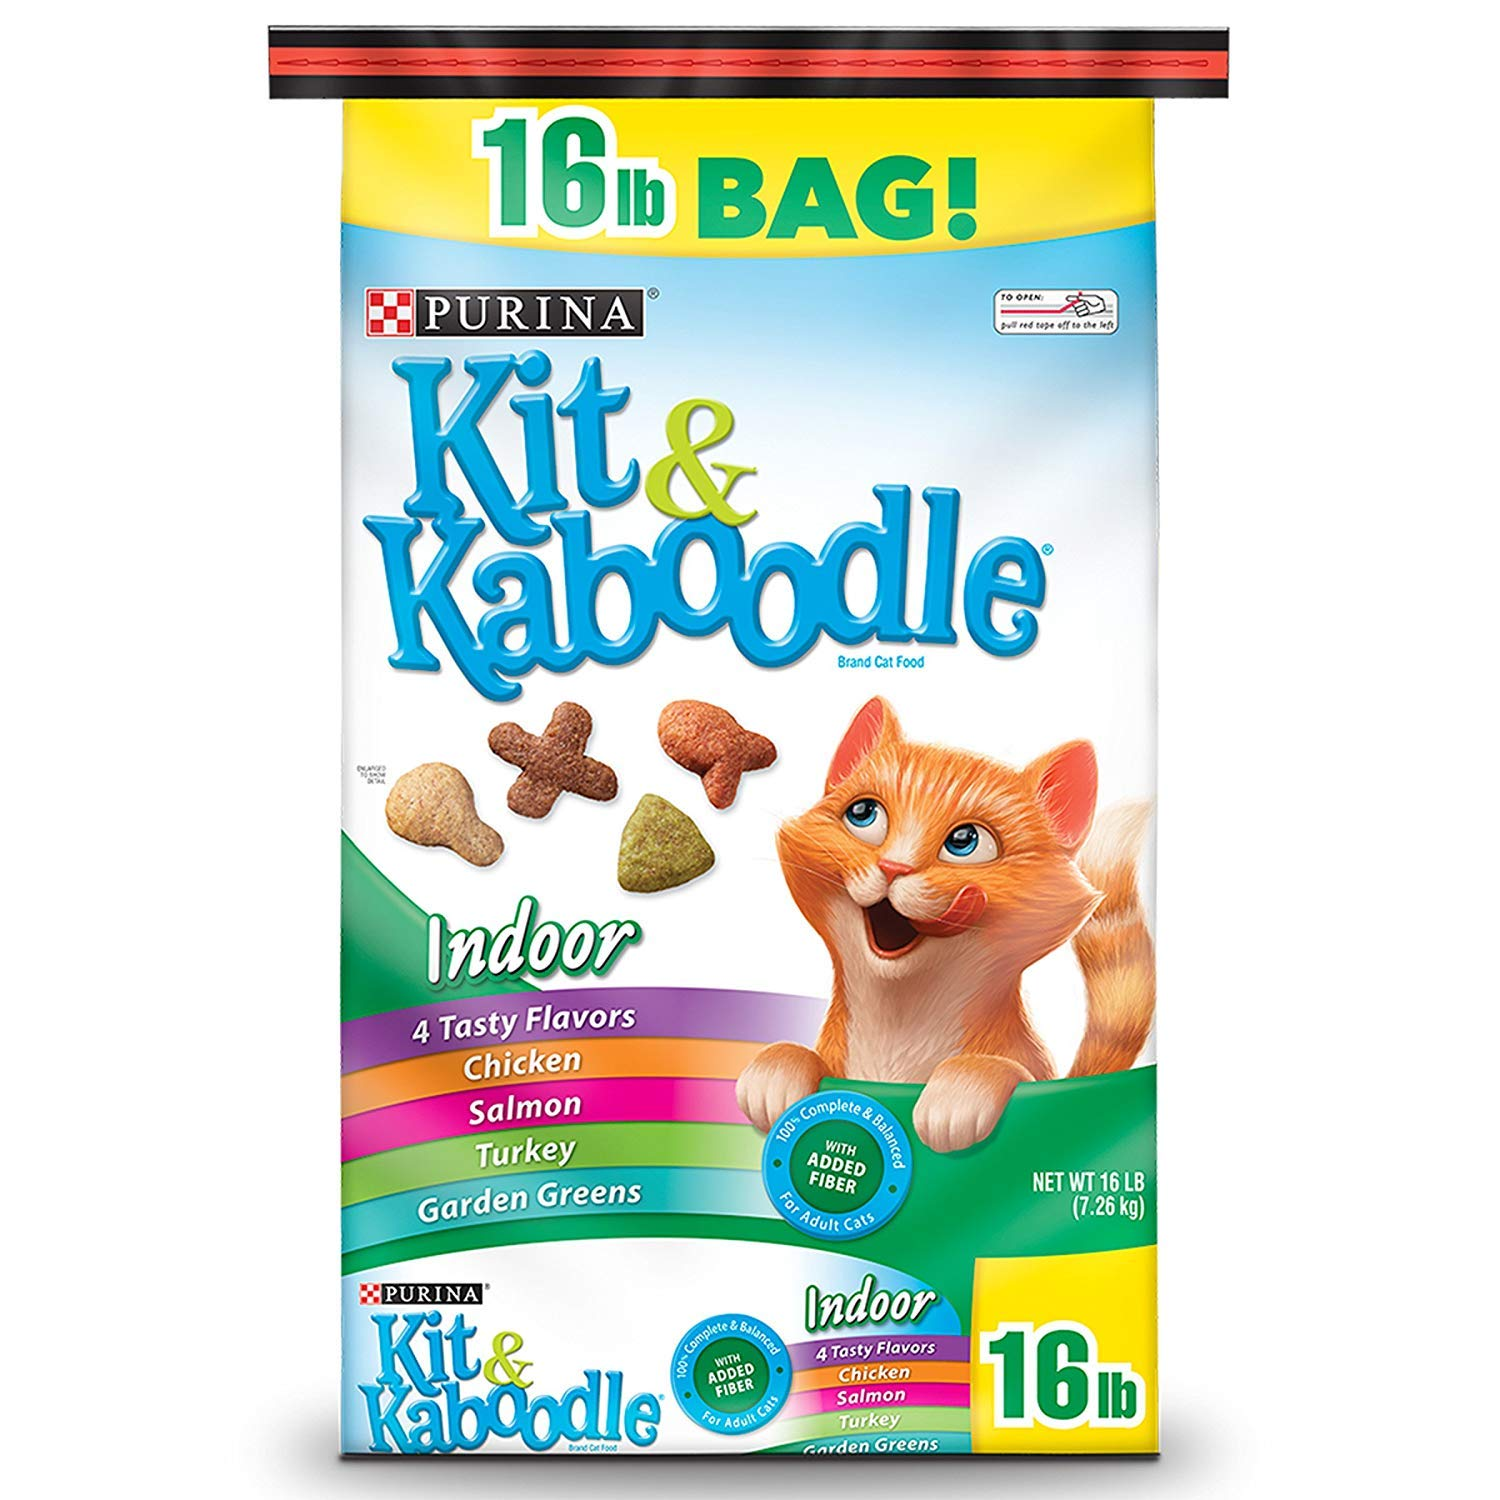 Purina Kit & Kaboodle Indoor Dry Cat Food, Indoor – 16 lb. Bag